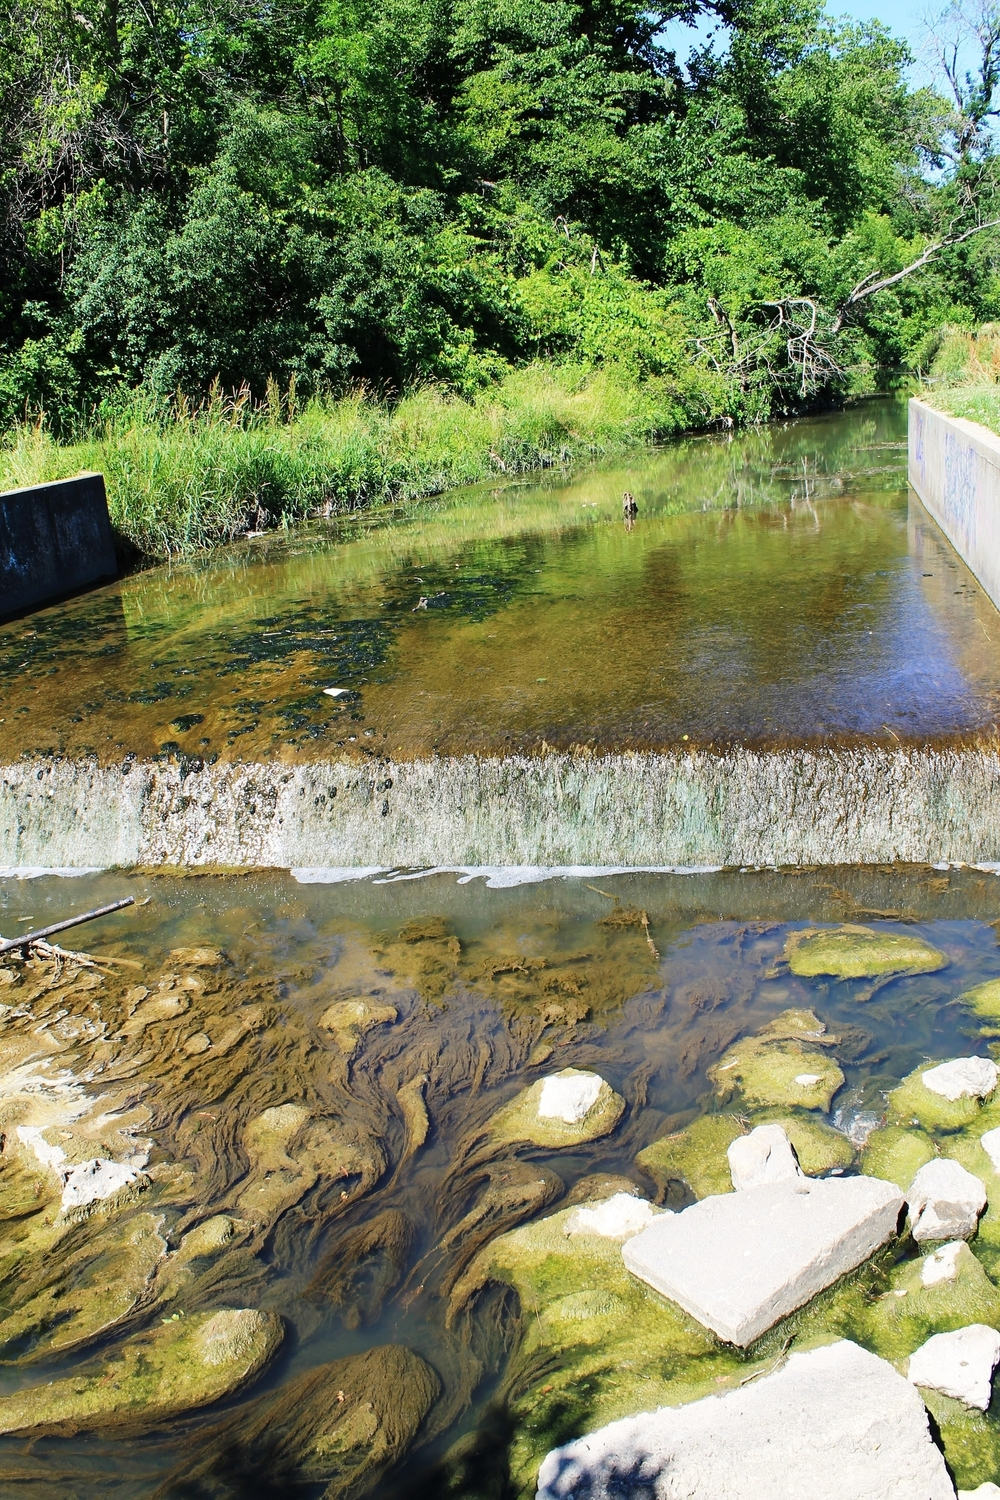 Fueled by phosphorus and nitrogen, algae overruns the Pike Creek in Kenosha.